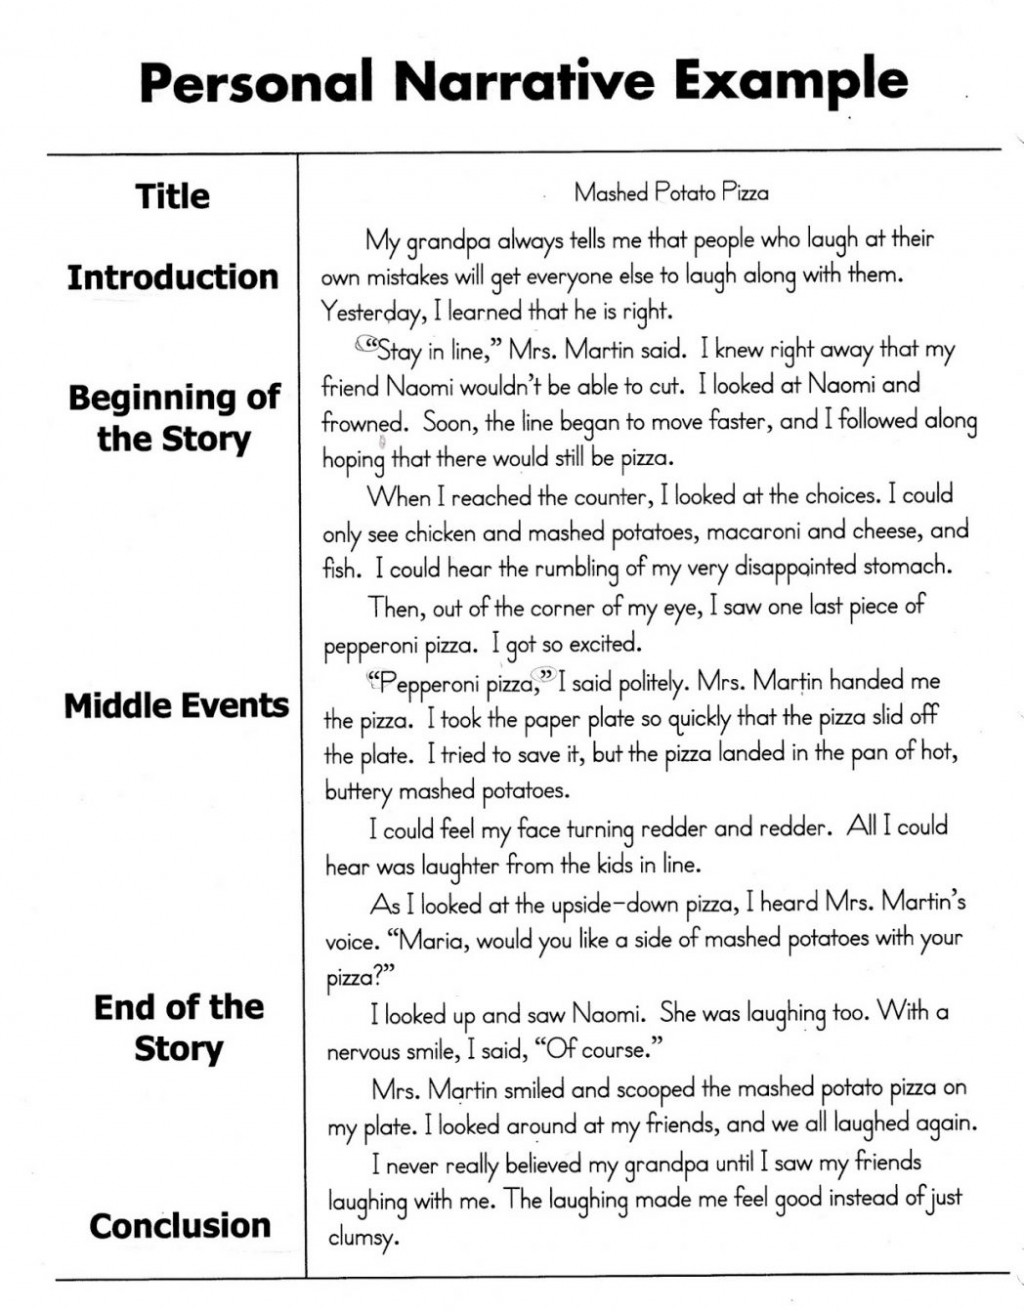 004 Macbeth Essay Topics Example Topic Sample Narrative High School For College Students Personal Prompts Surprising Examples Pdf Grade 11 Tragic Hero Large